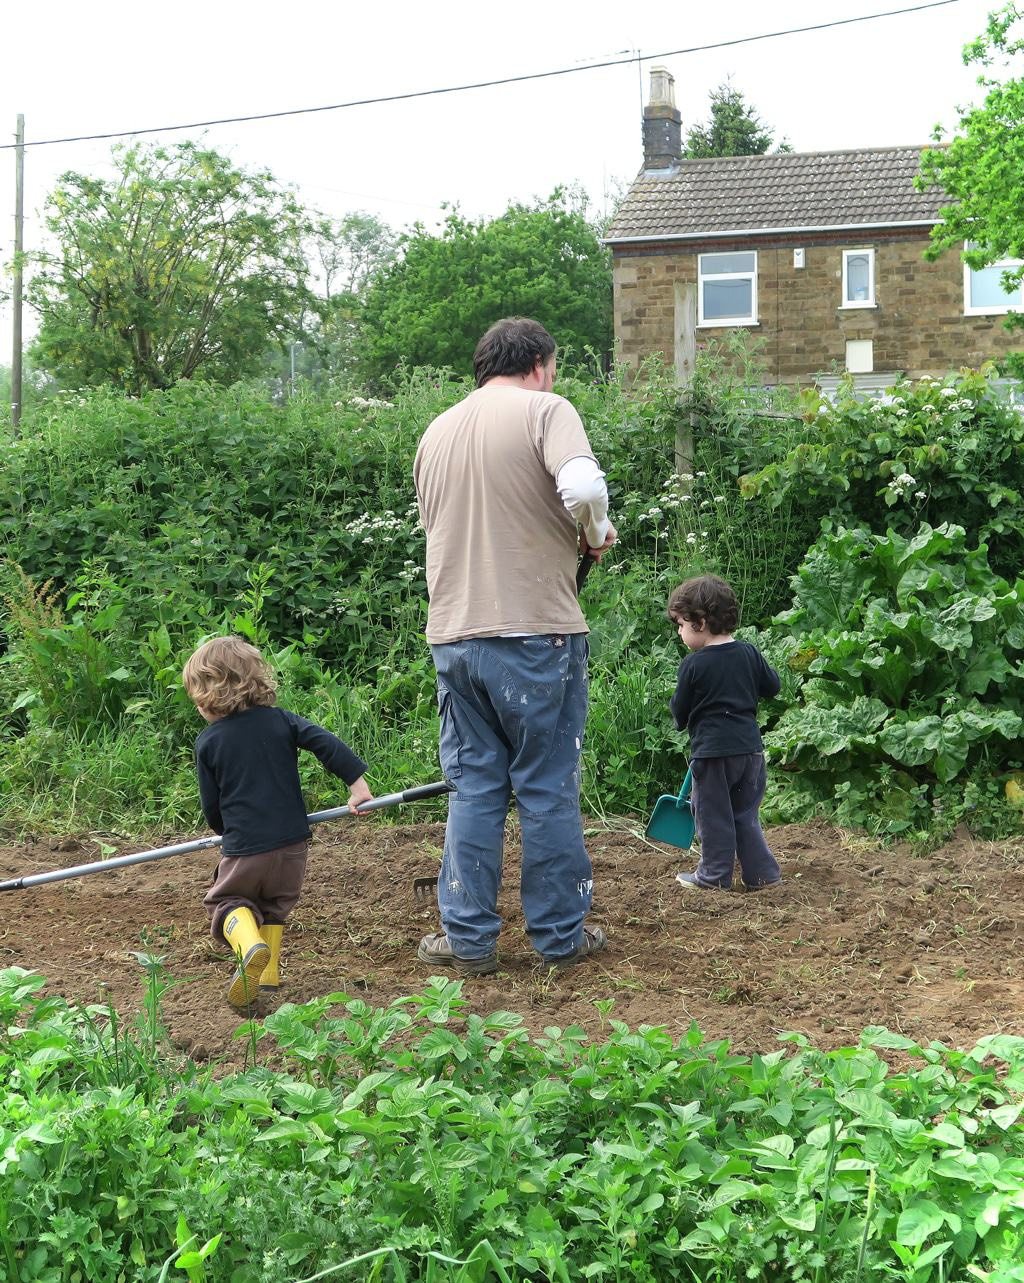 Me And Mine May 2016 at the allotment